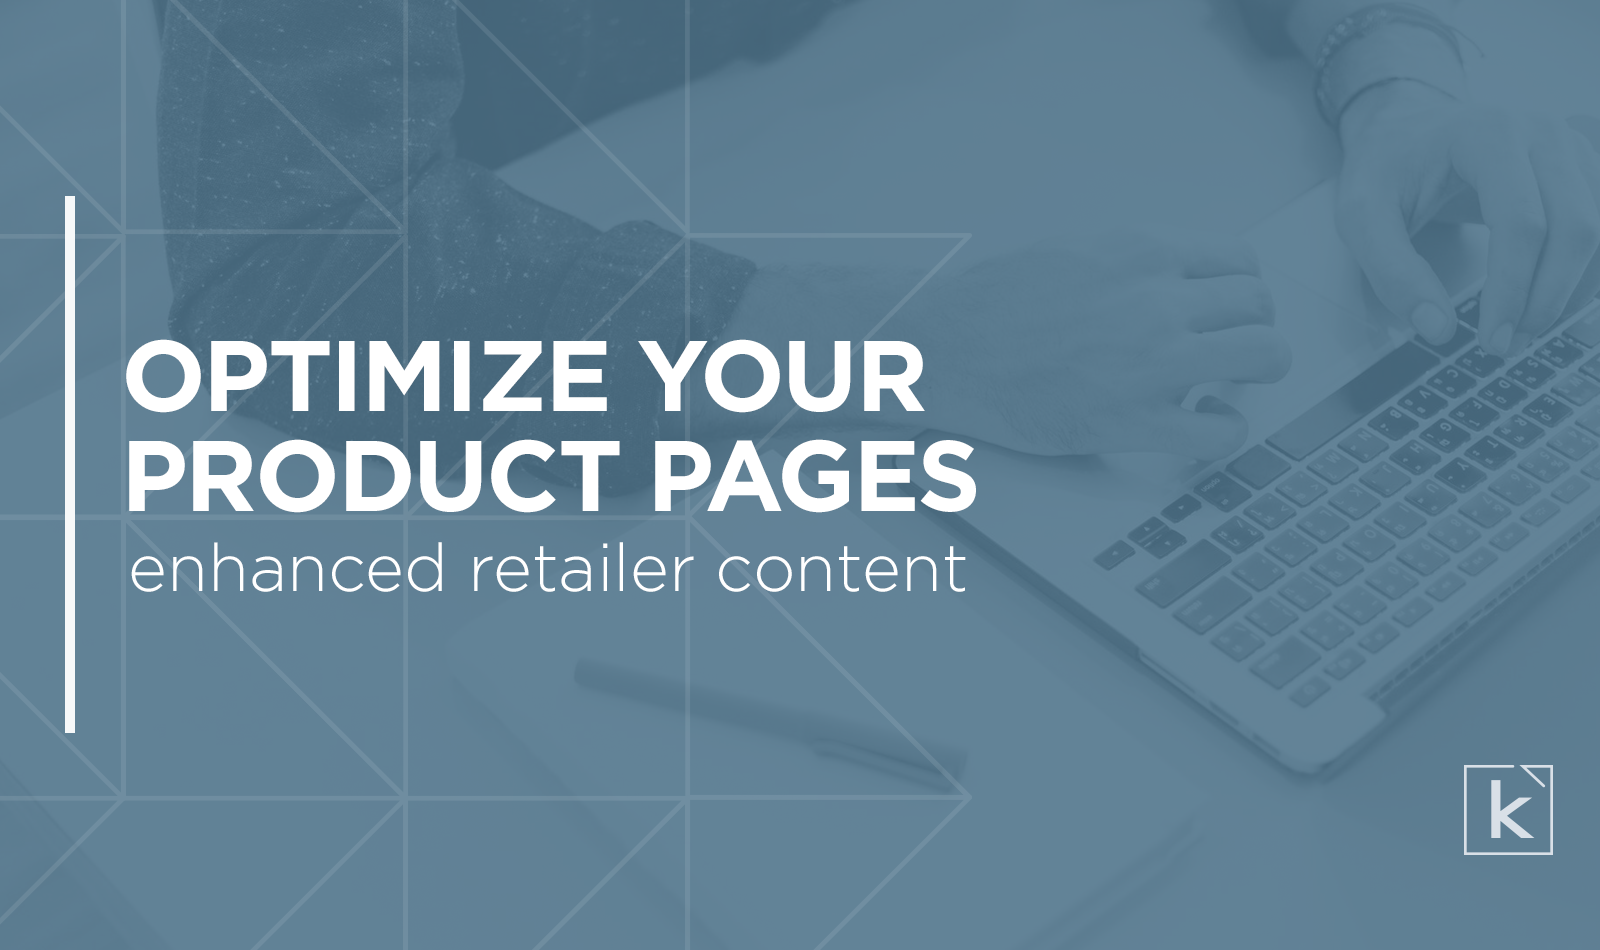 optimize-your-amazon-product-pages